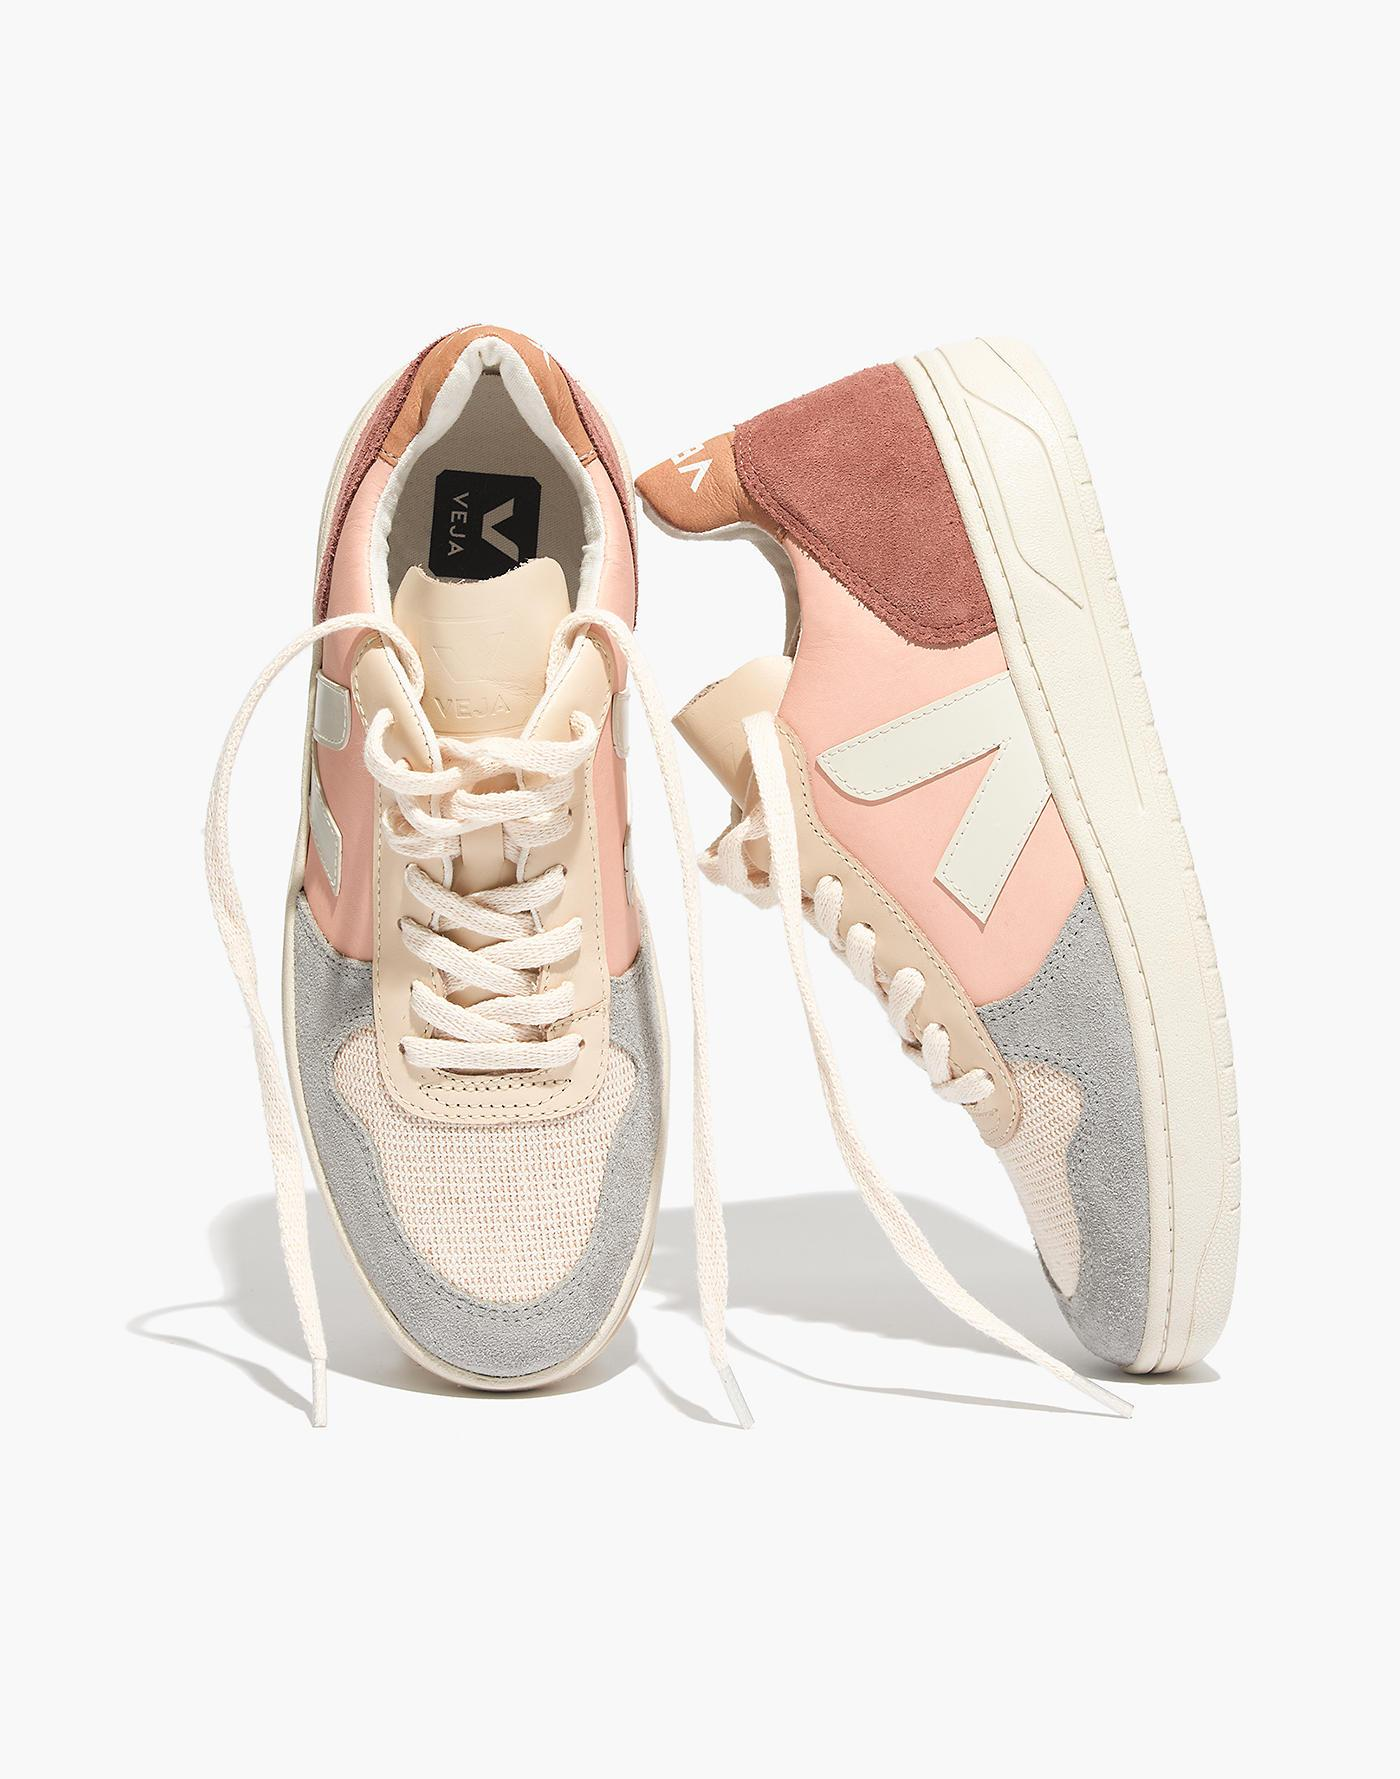 Madewell Leather Veja V-10 Sneakers In